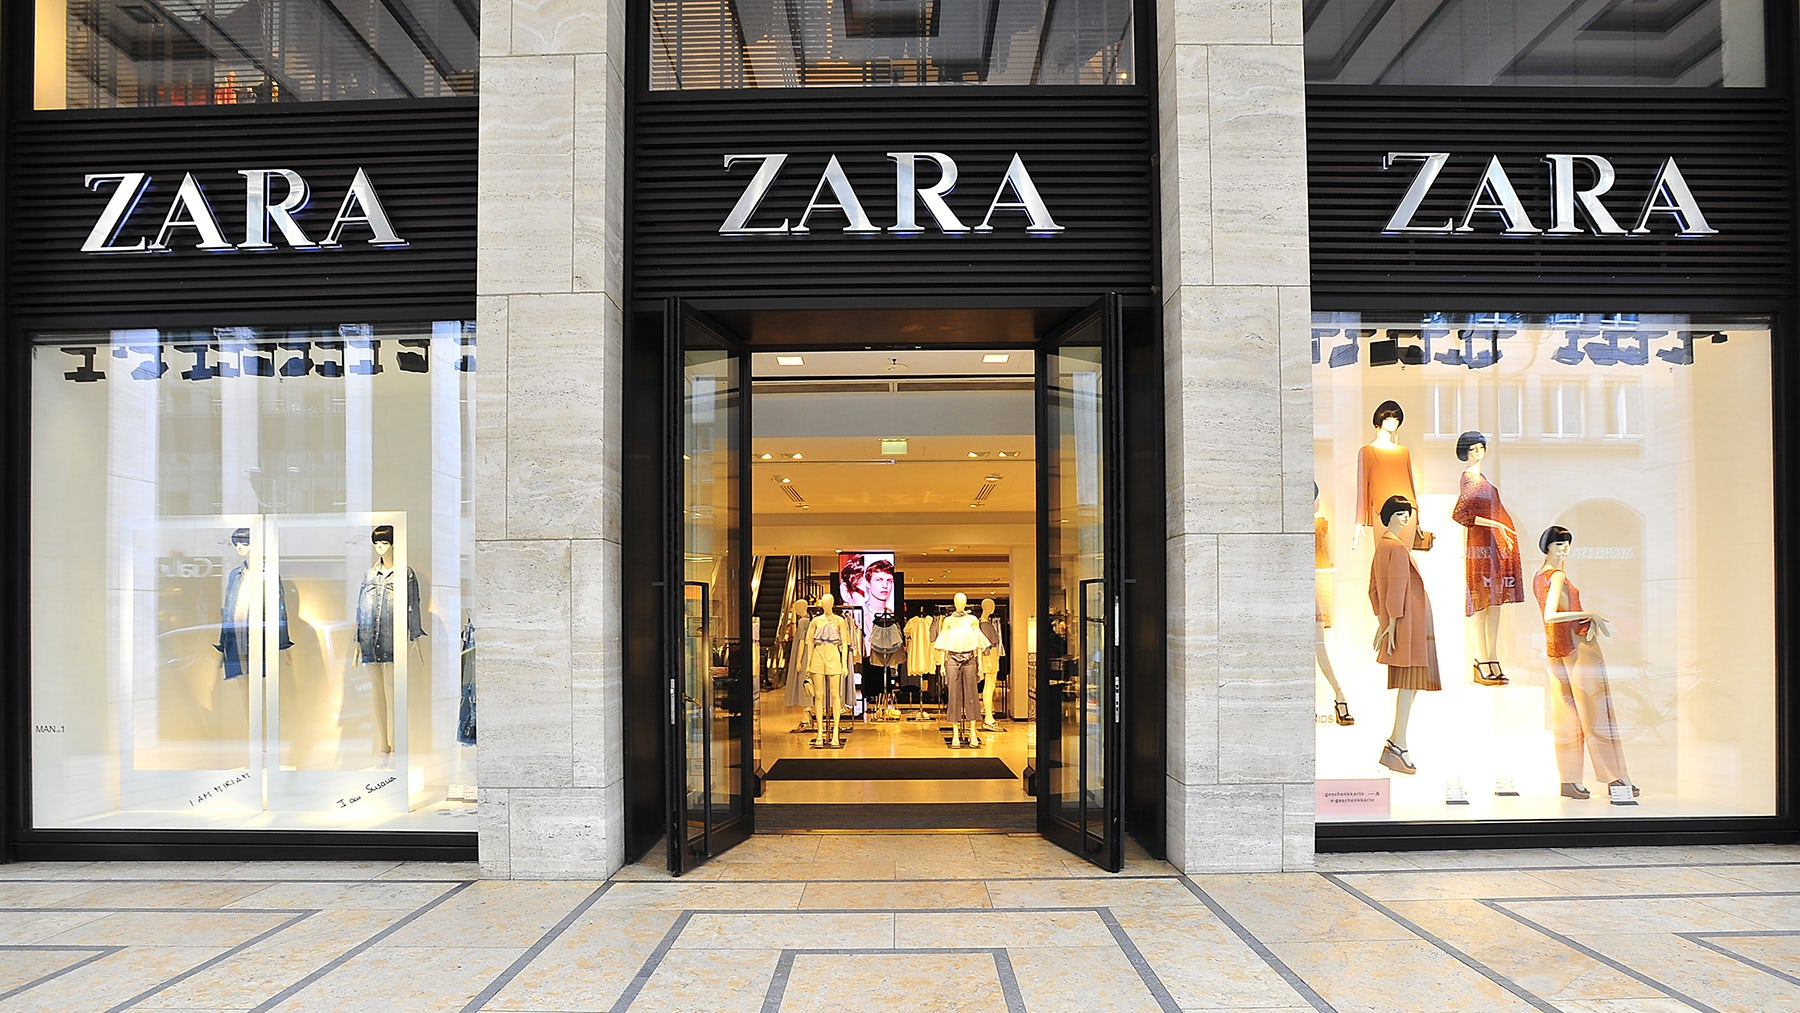 suppliers for zara Manufacturers this type of vertical integration is key to quick new product introduction cycles in addition, most of the manufacturing operations seem to be centered around primary manufacturing facilities in spain, with suppliers also setting up their operations close to zara's manufacturing operations.